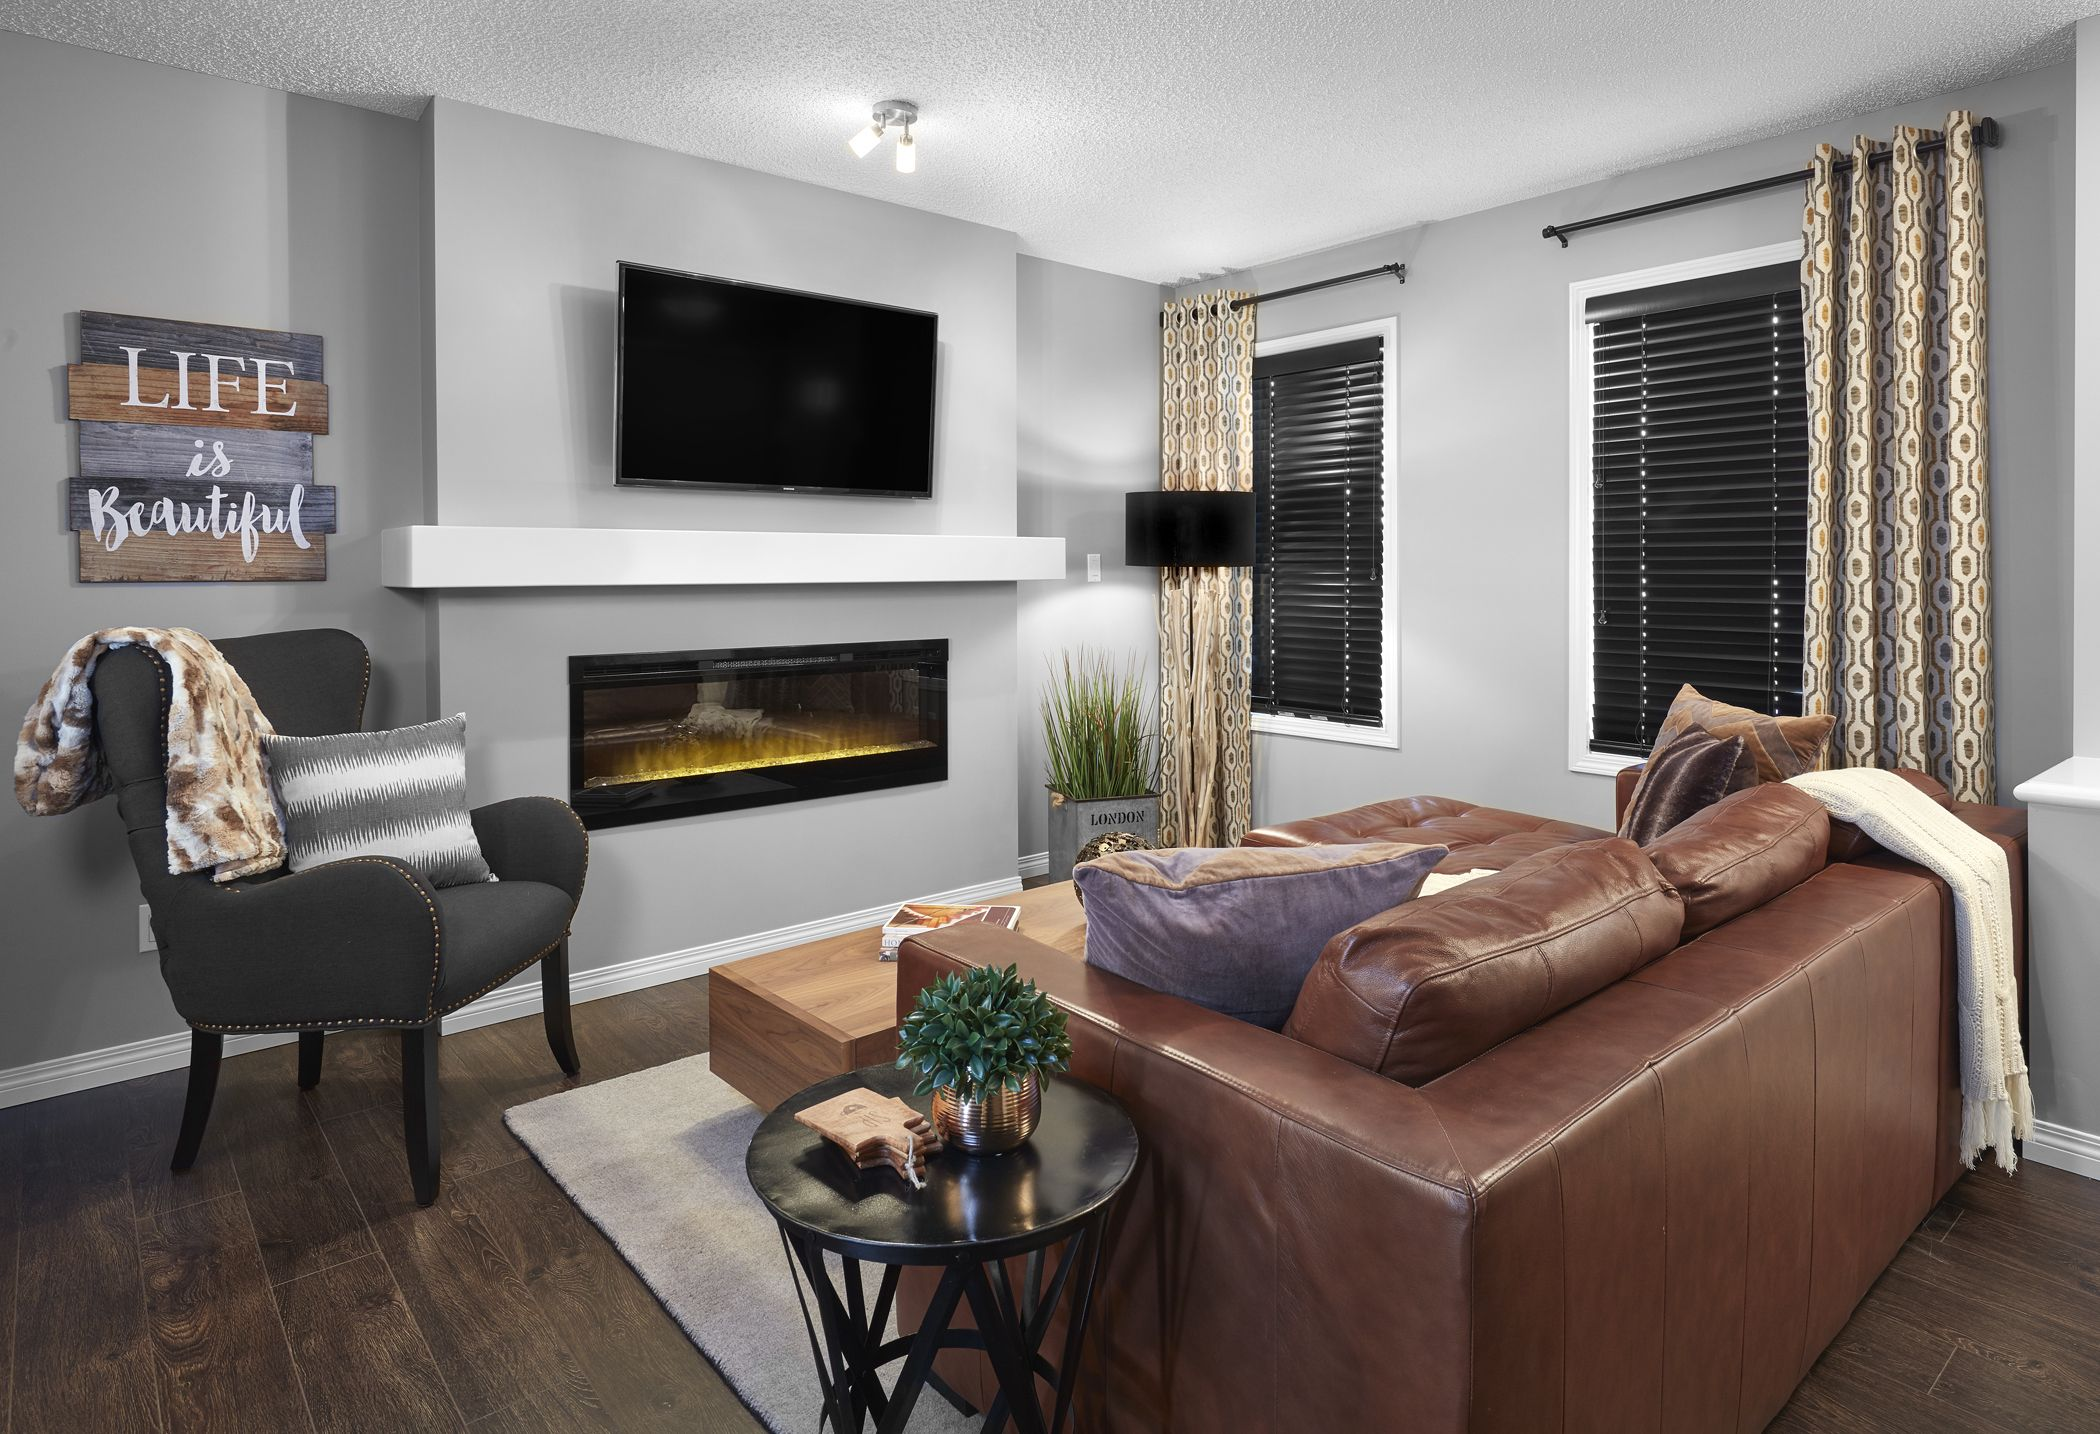 A Relaxing Living Room In Our New Avanti Town House Show Home